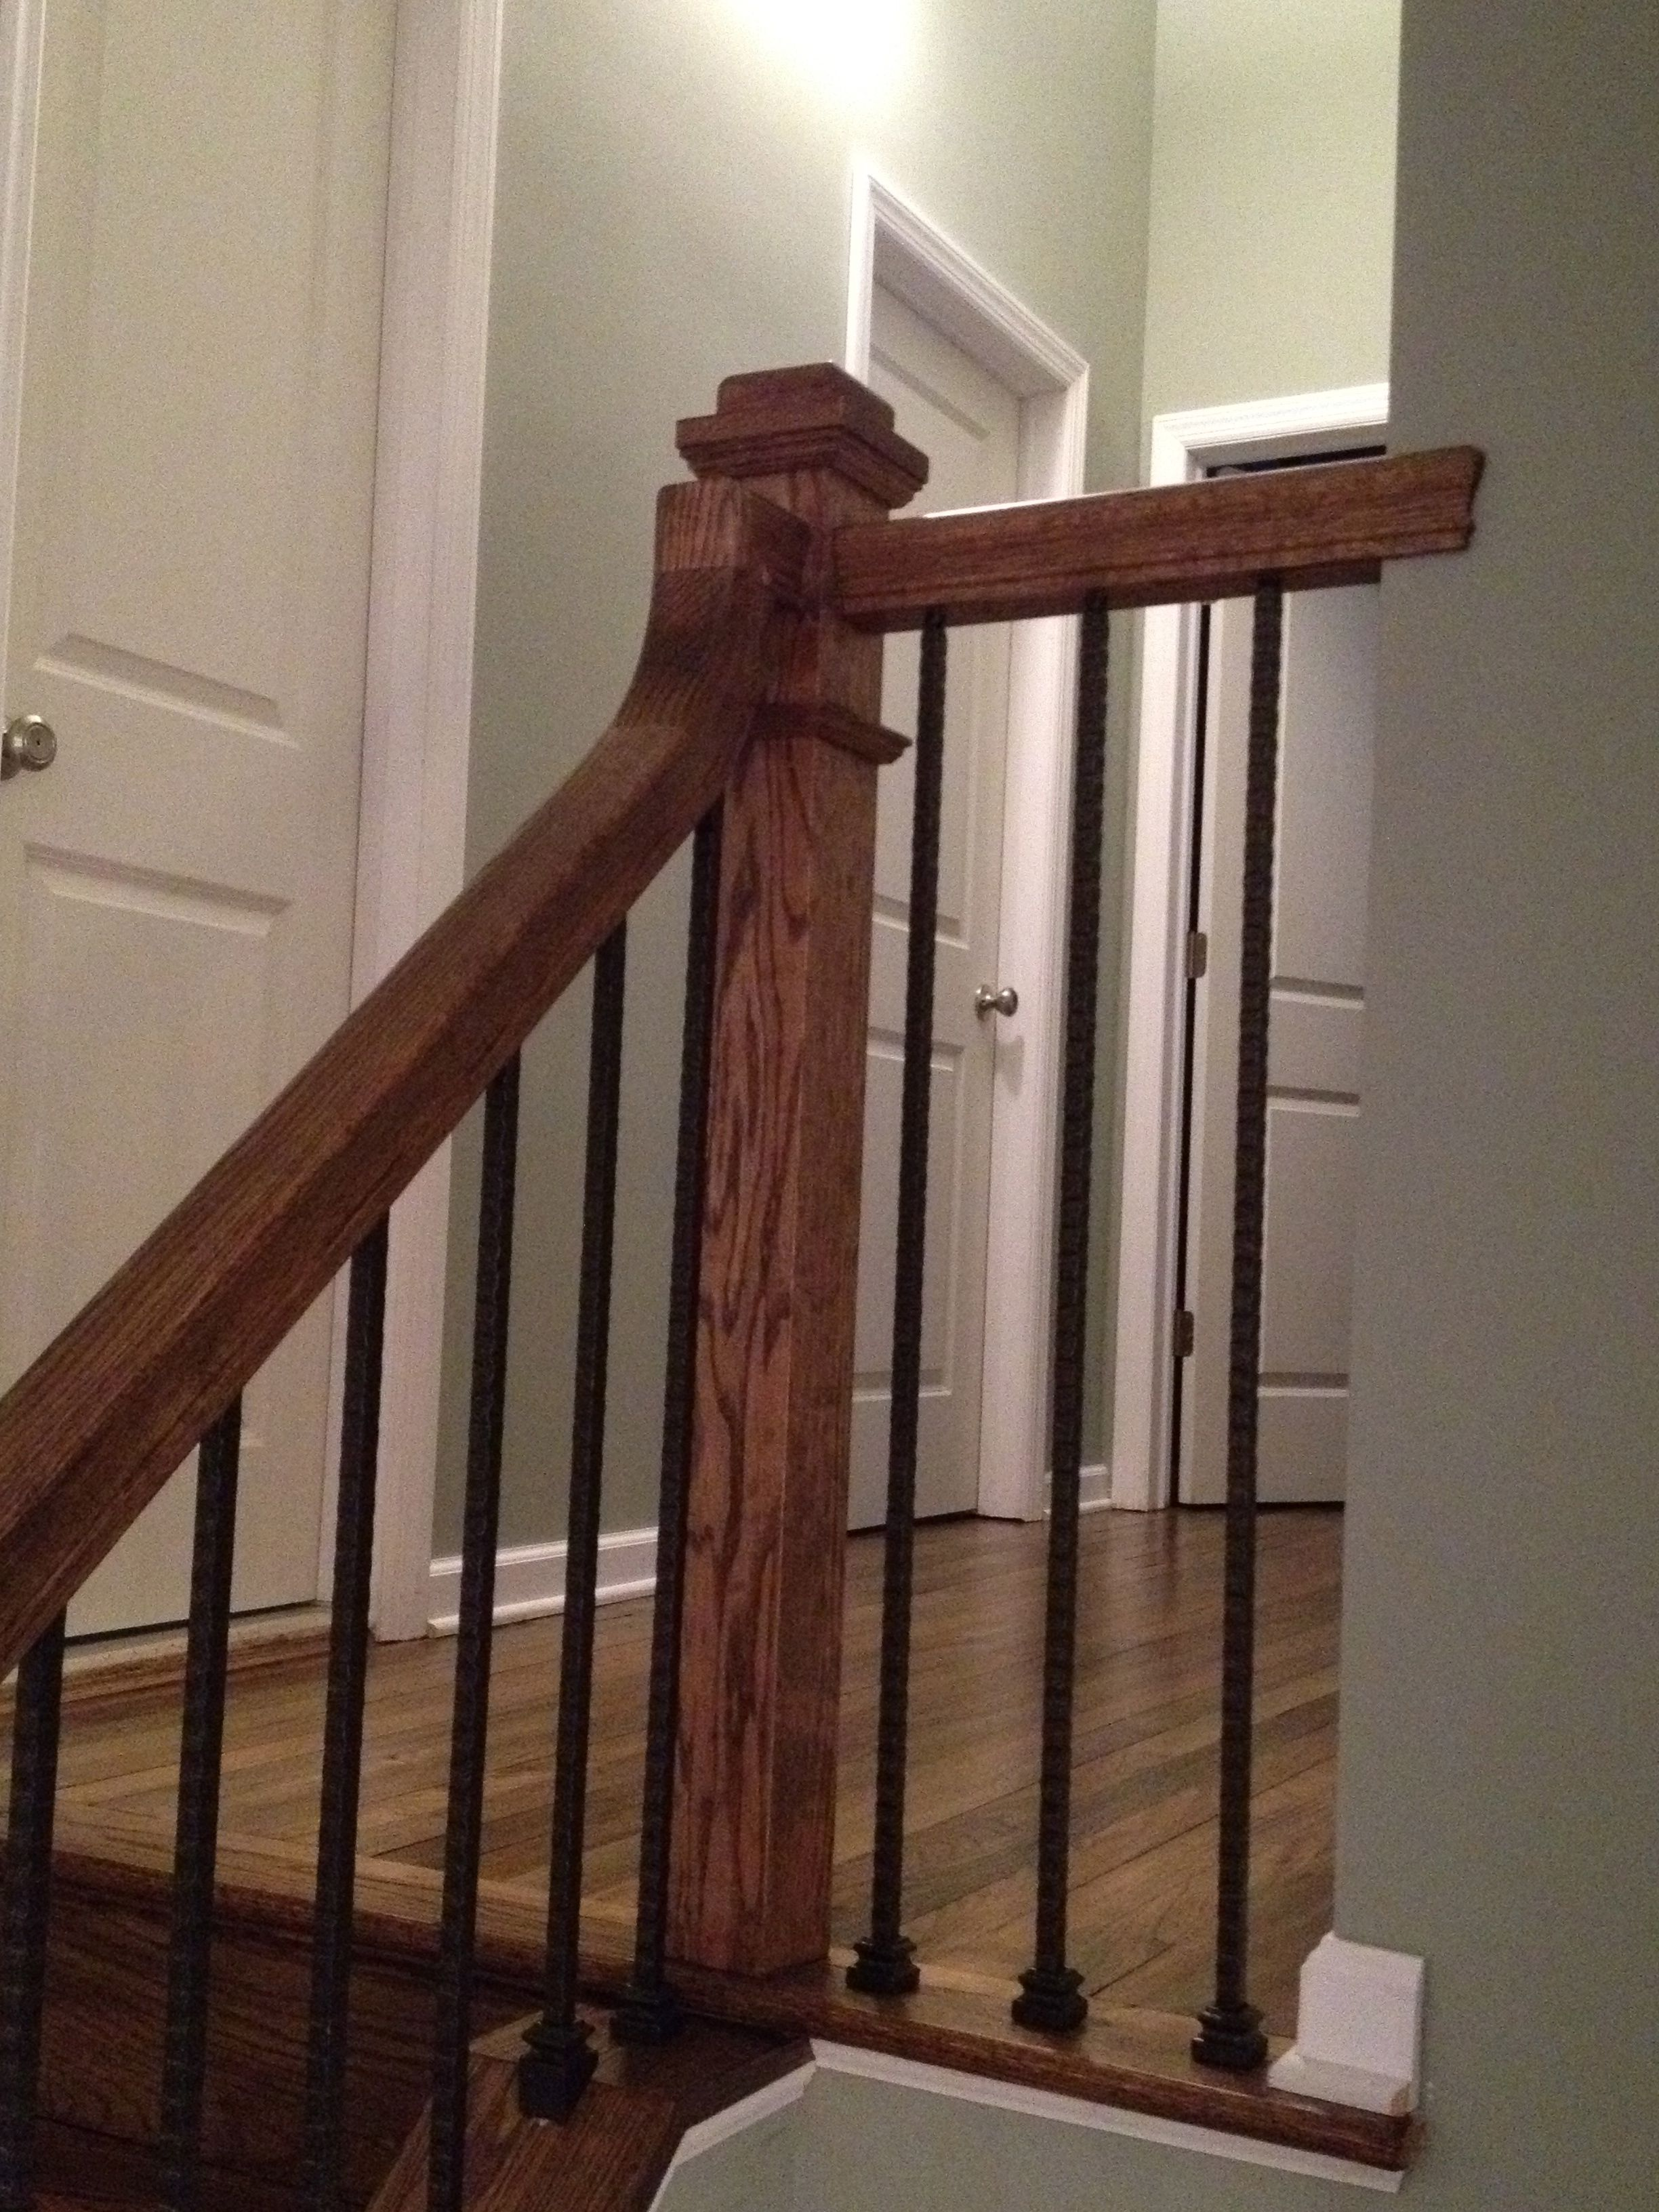 Handrail installation by Gorsegner Brothers Hardwood Floors     Handrail installation by Gorsegner Brothers Hardwood Floors